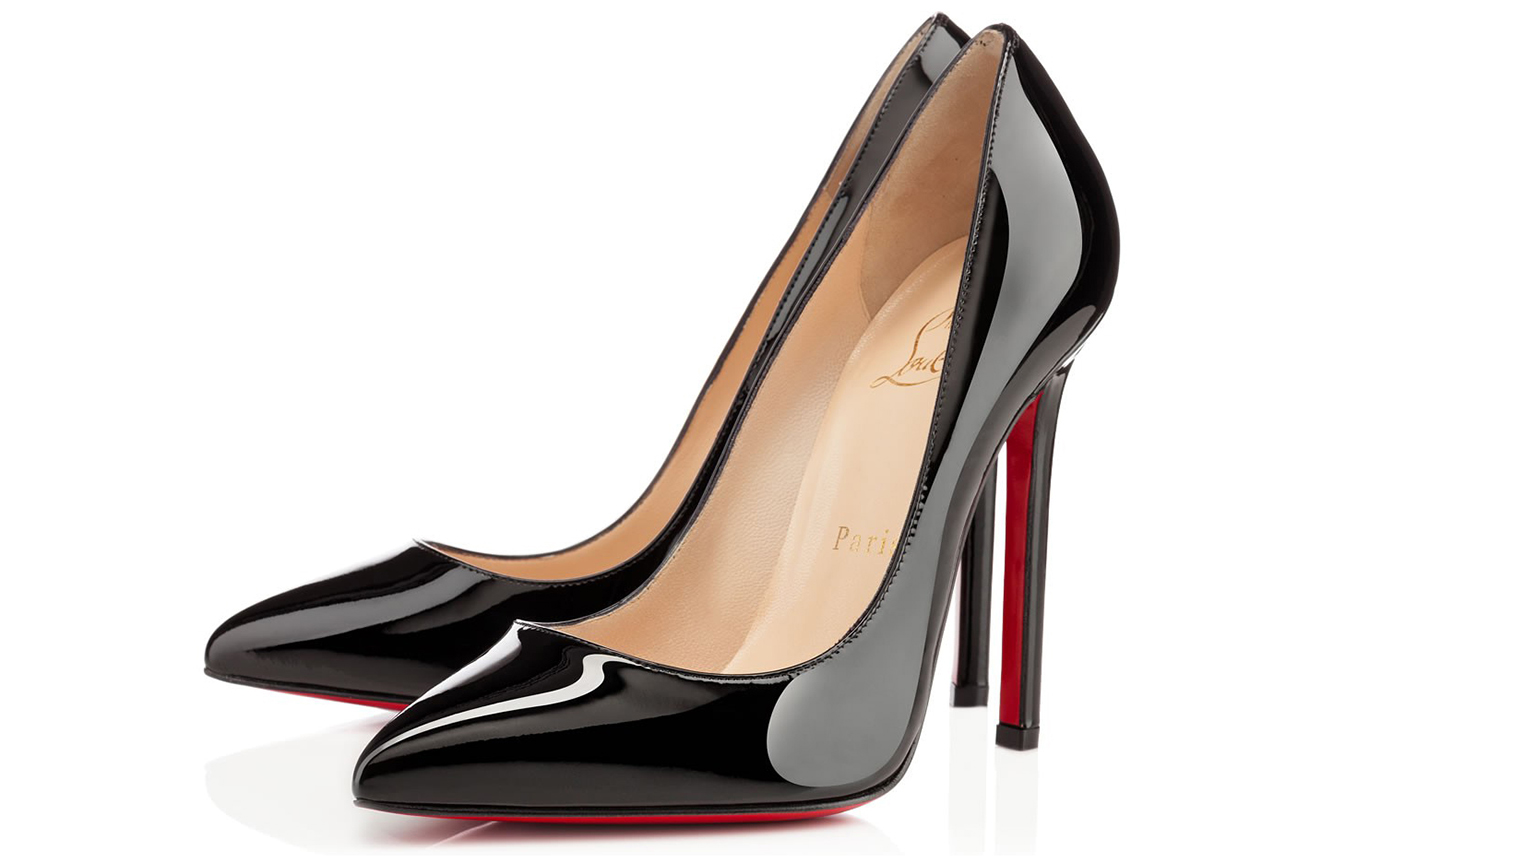 Christian Louboutin's pigalle high heels -